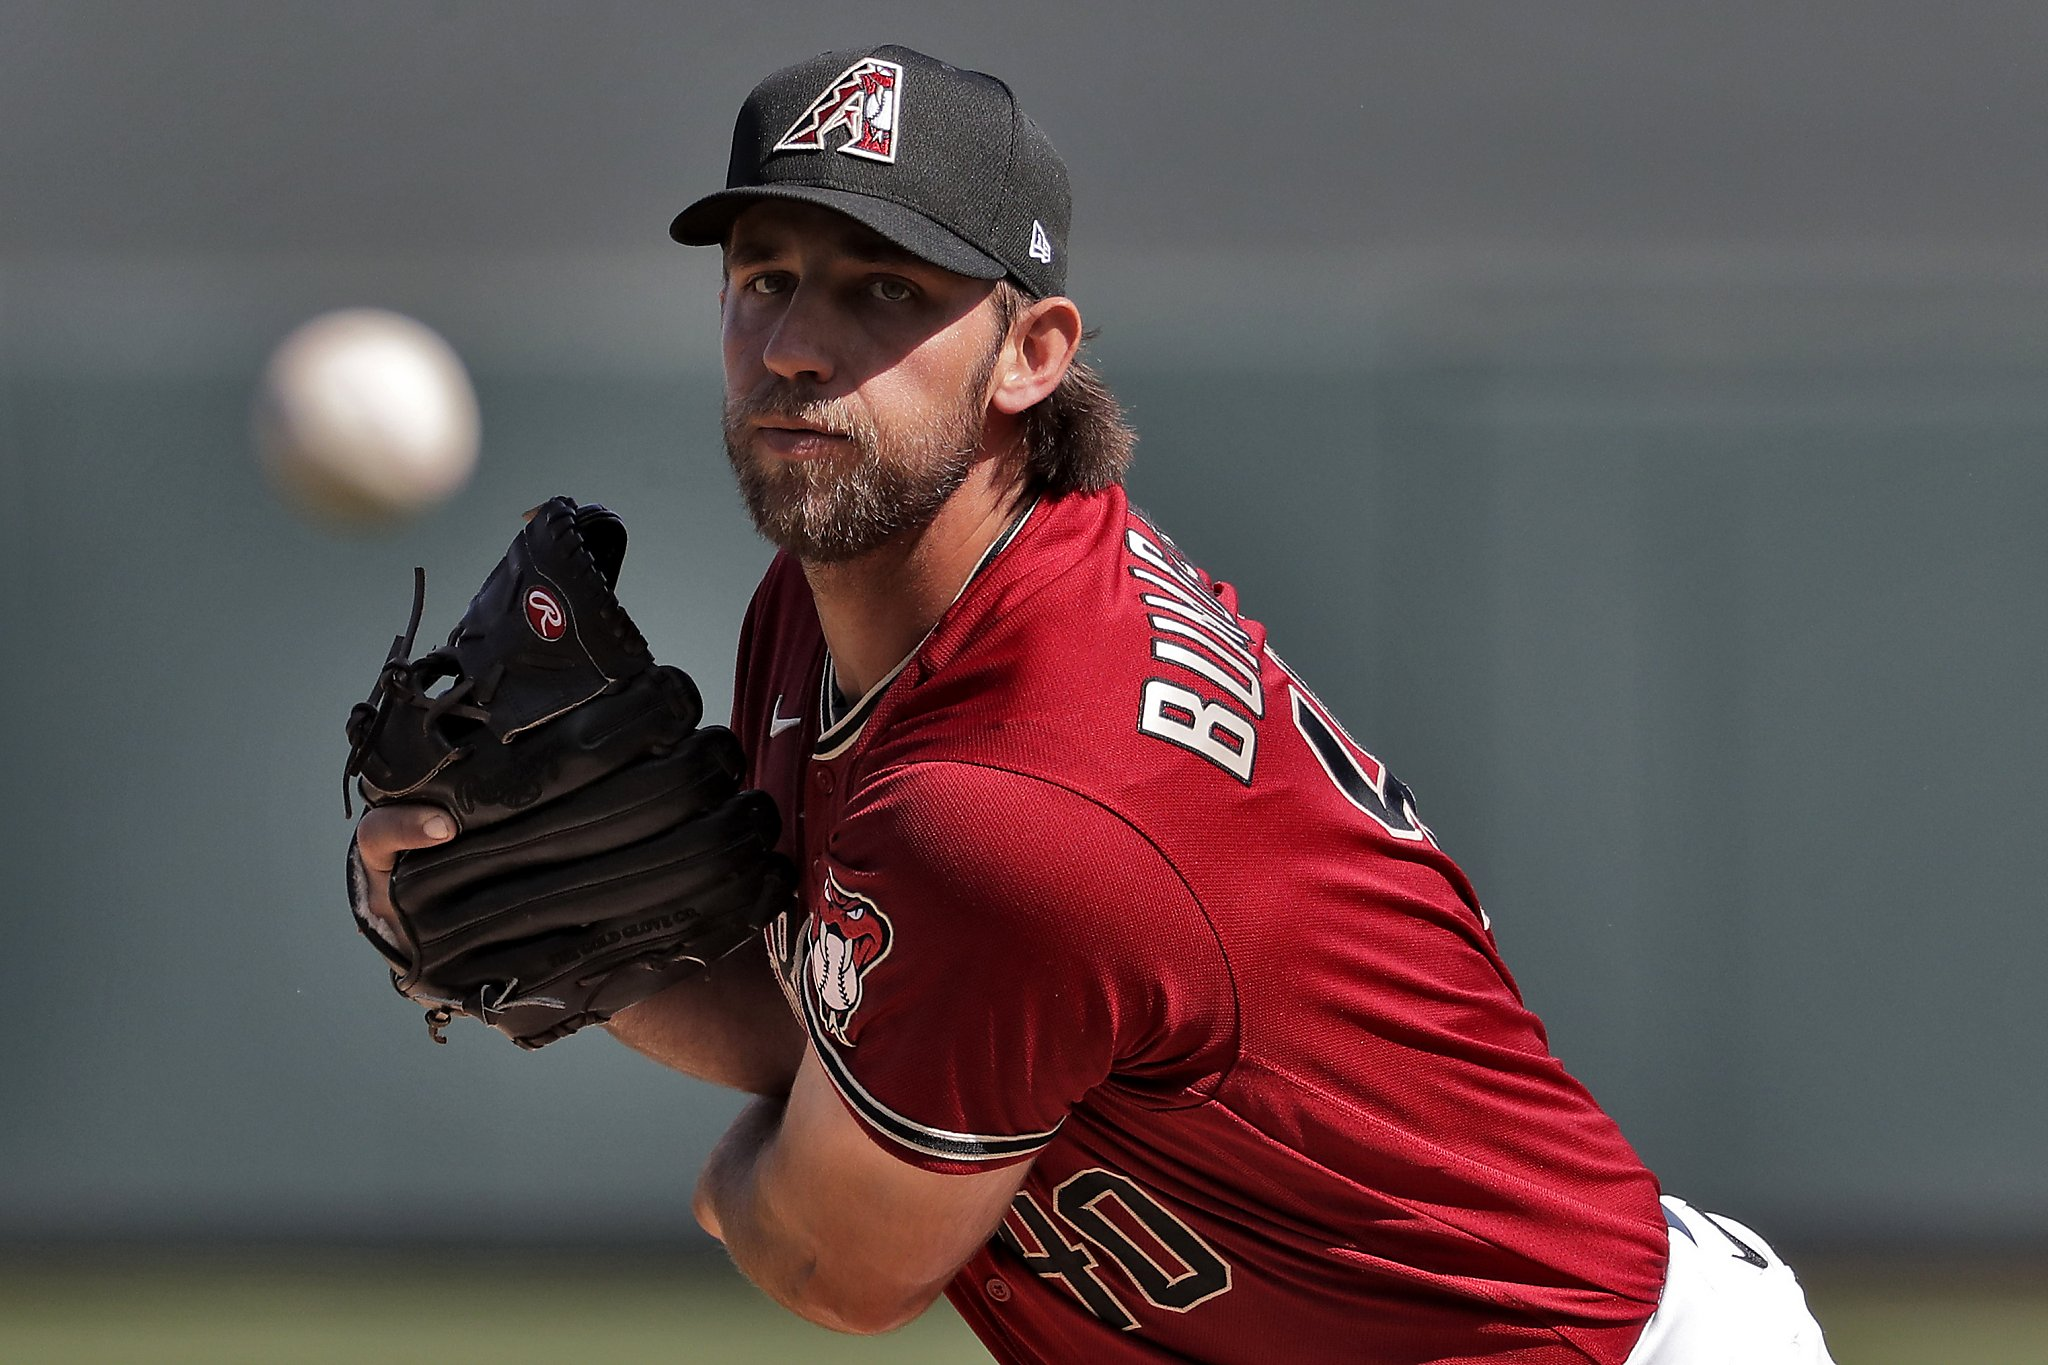 Cowboy Up: MadBum solid in first outing with Diamondbacks